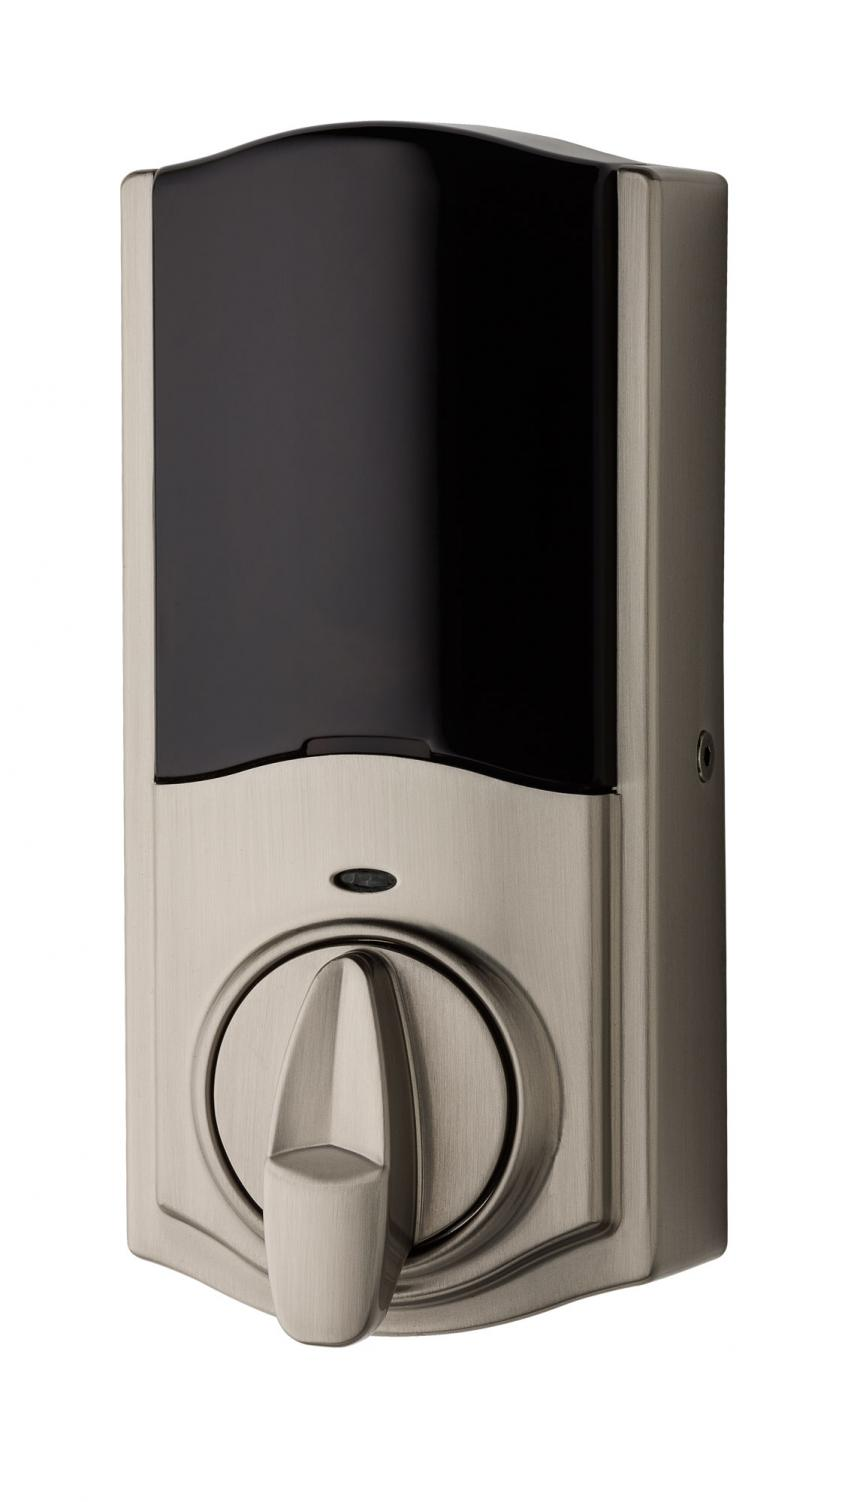 "Designed for the retrofit market, Kevo Convert turns an existing deadbolt into a smart lock. The unit replaces the interior side of the existing deadbolt. Once installed, homeowners may control their lock with a smartphone or send ""ekeys"" to visitors."